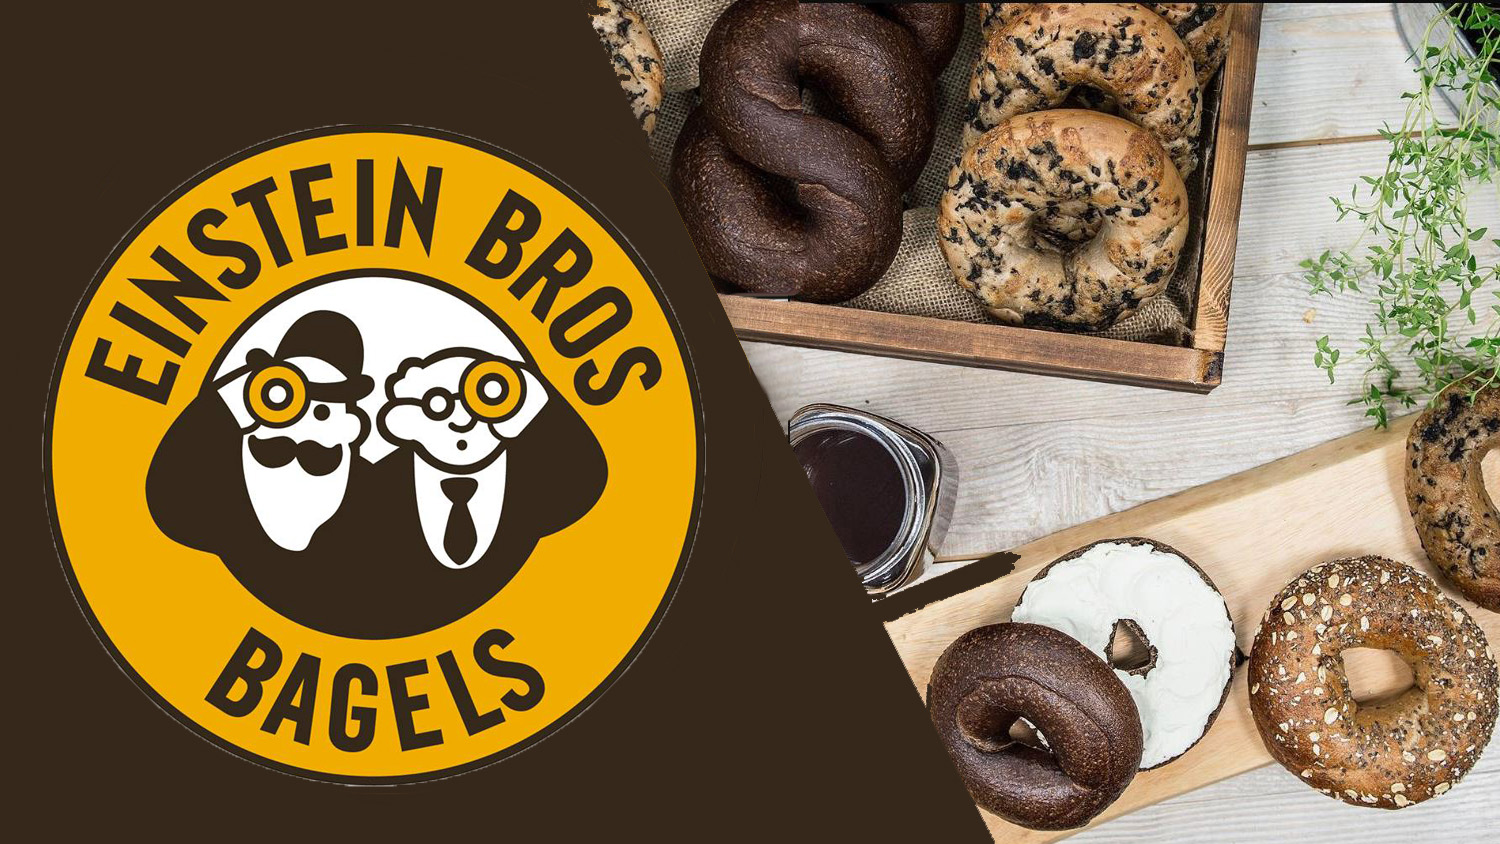 Einstein Bros Bagels Adds Vegan Cream Cheese at Select U.S. Locations